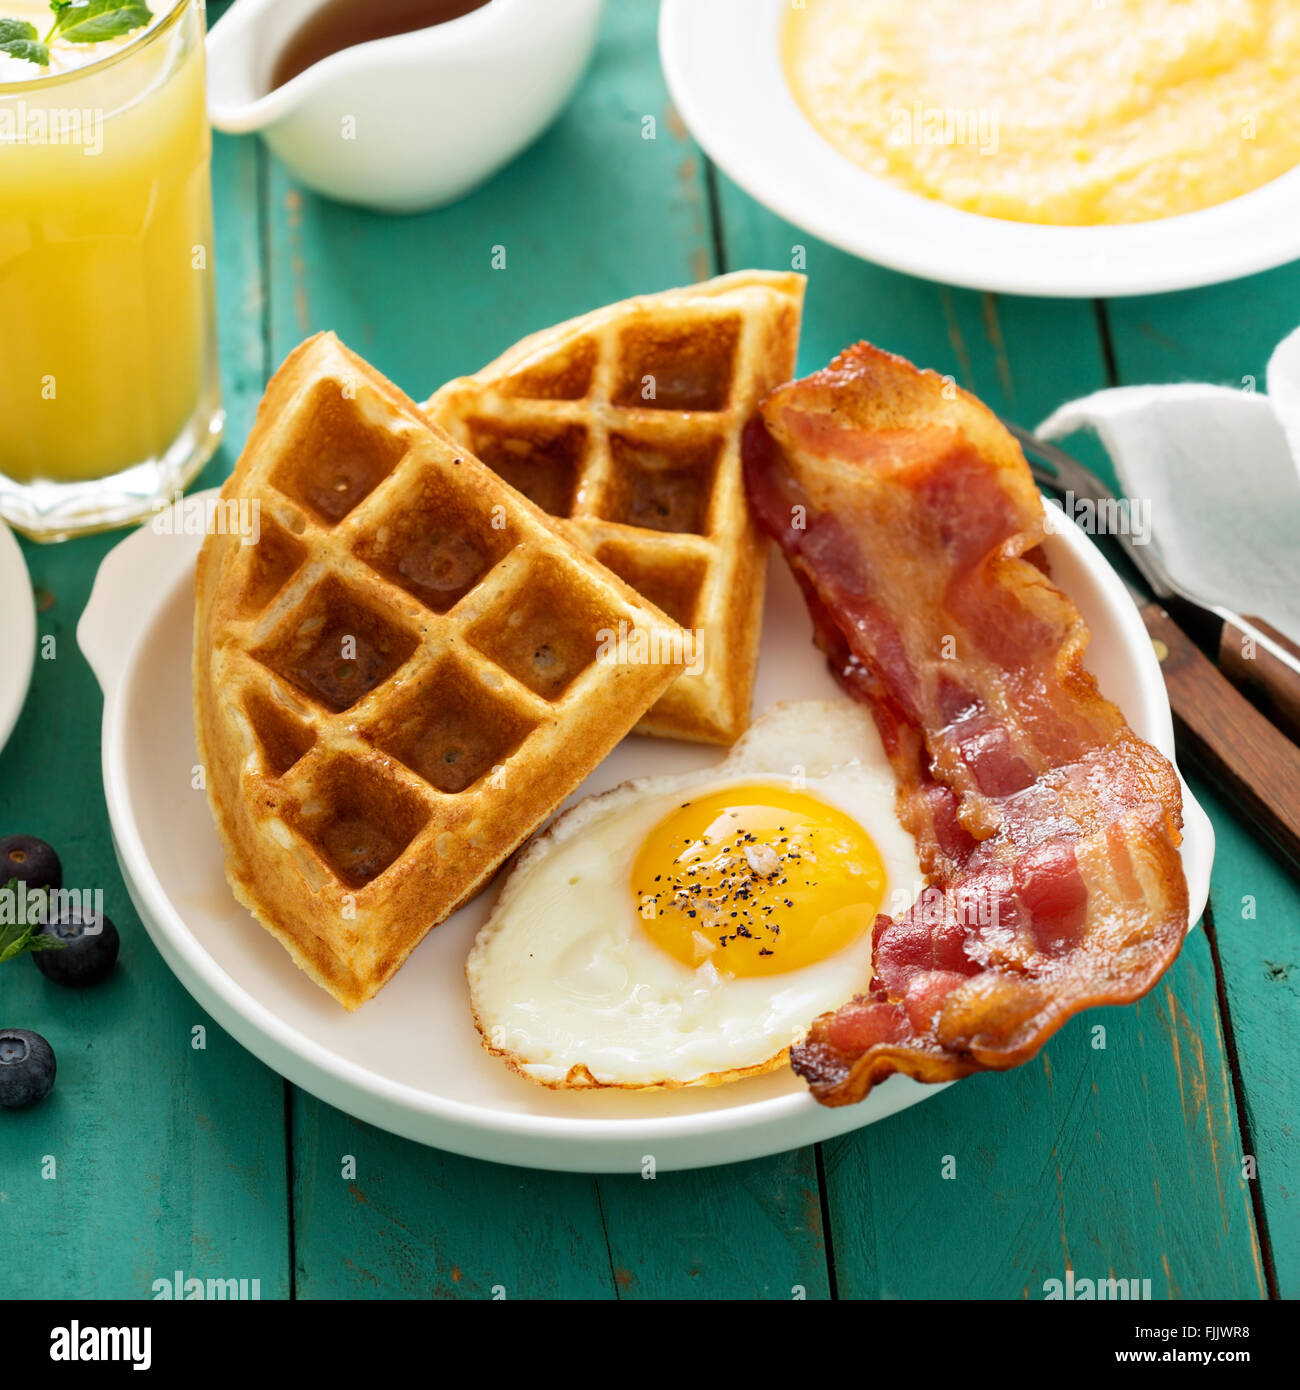 Southern cuisine breakfast with waffles - Stock Image